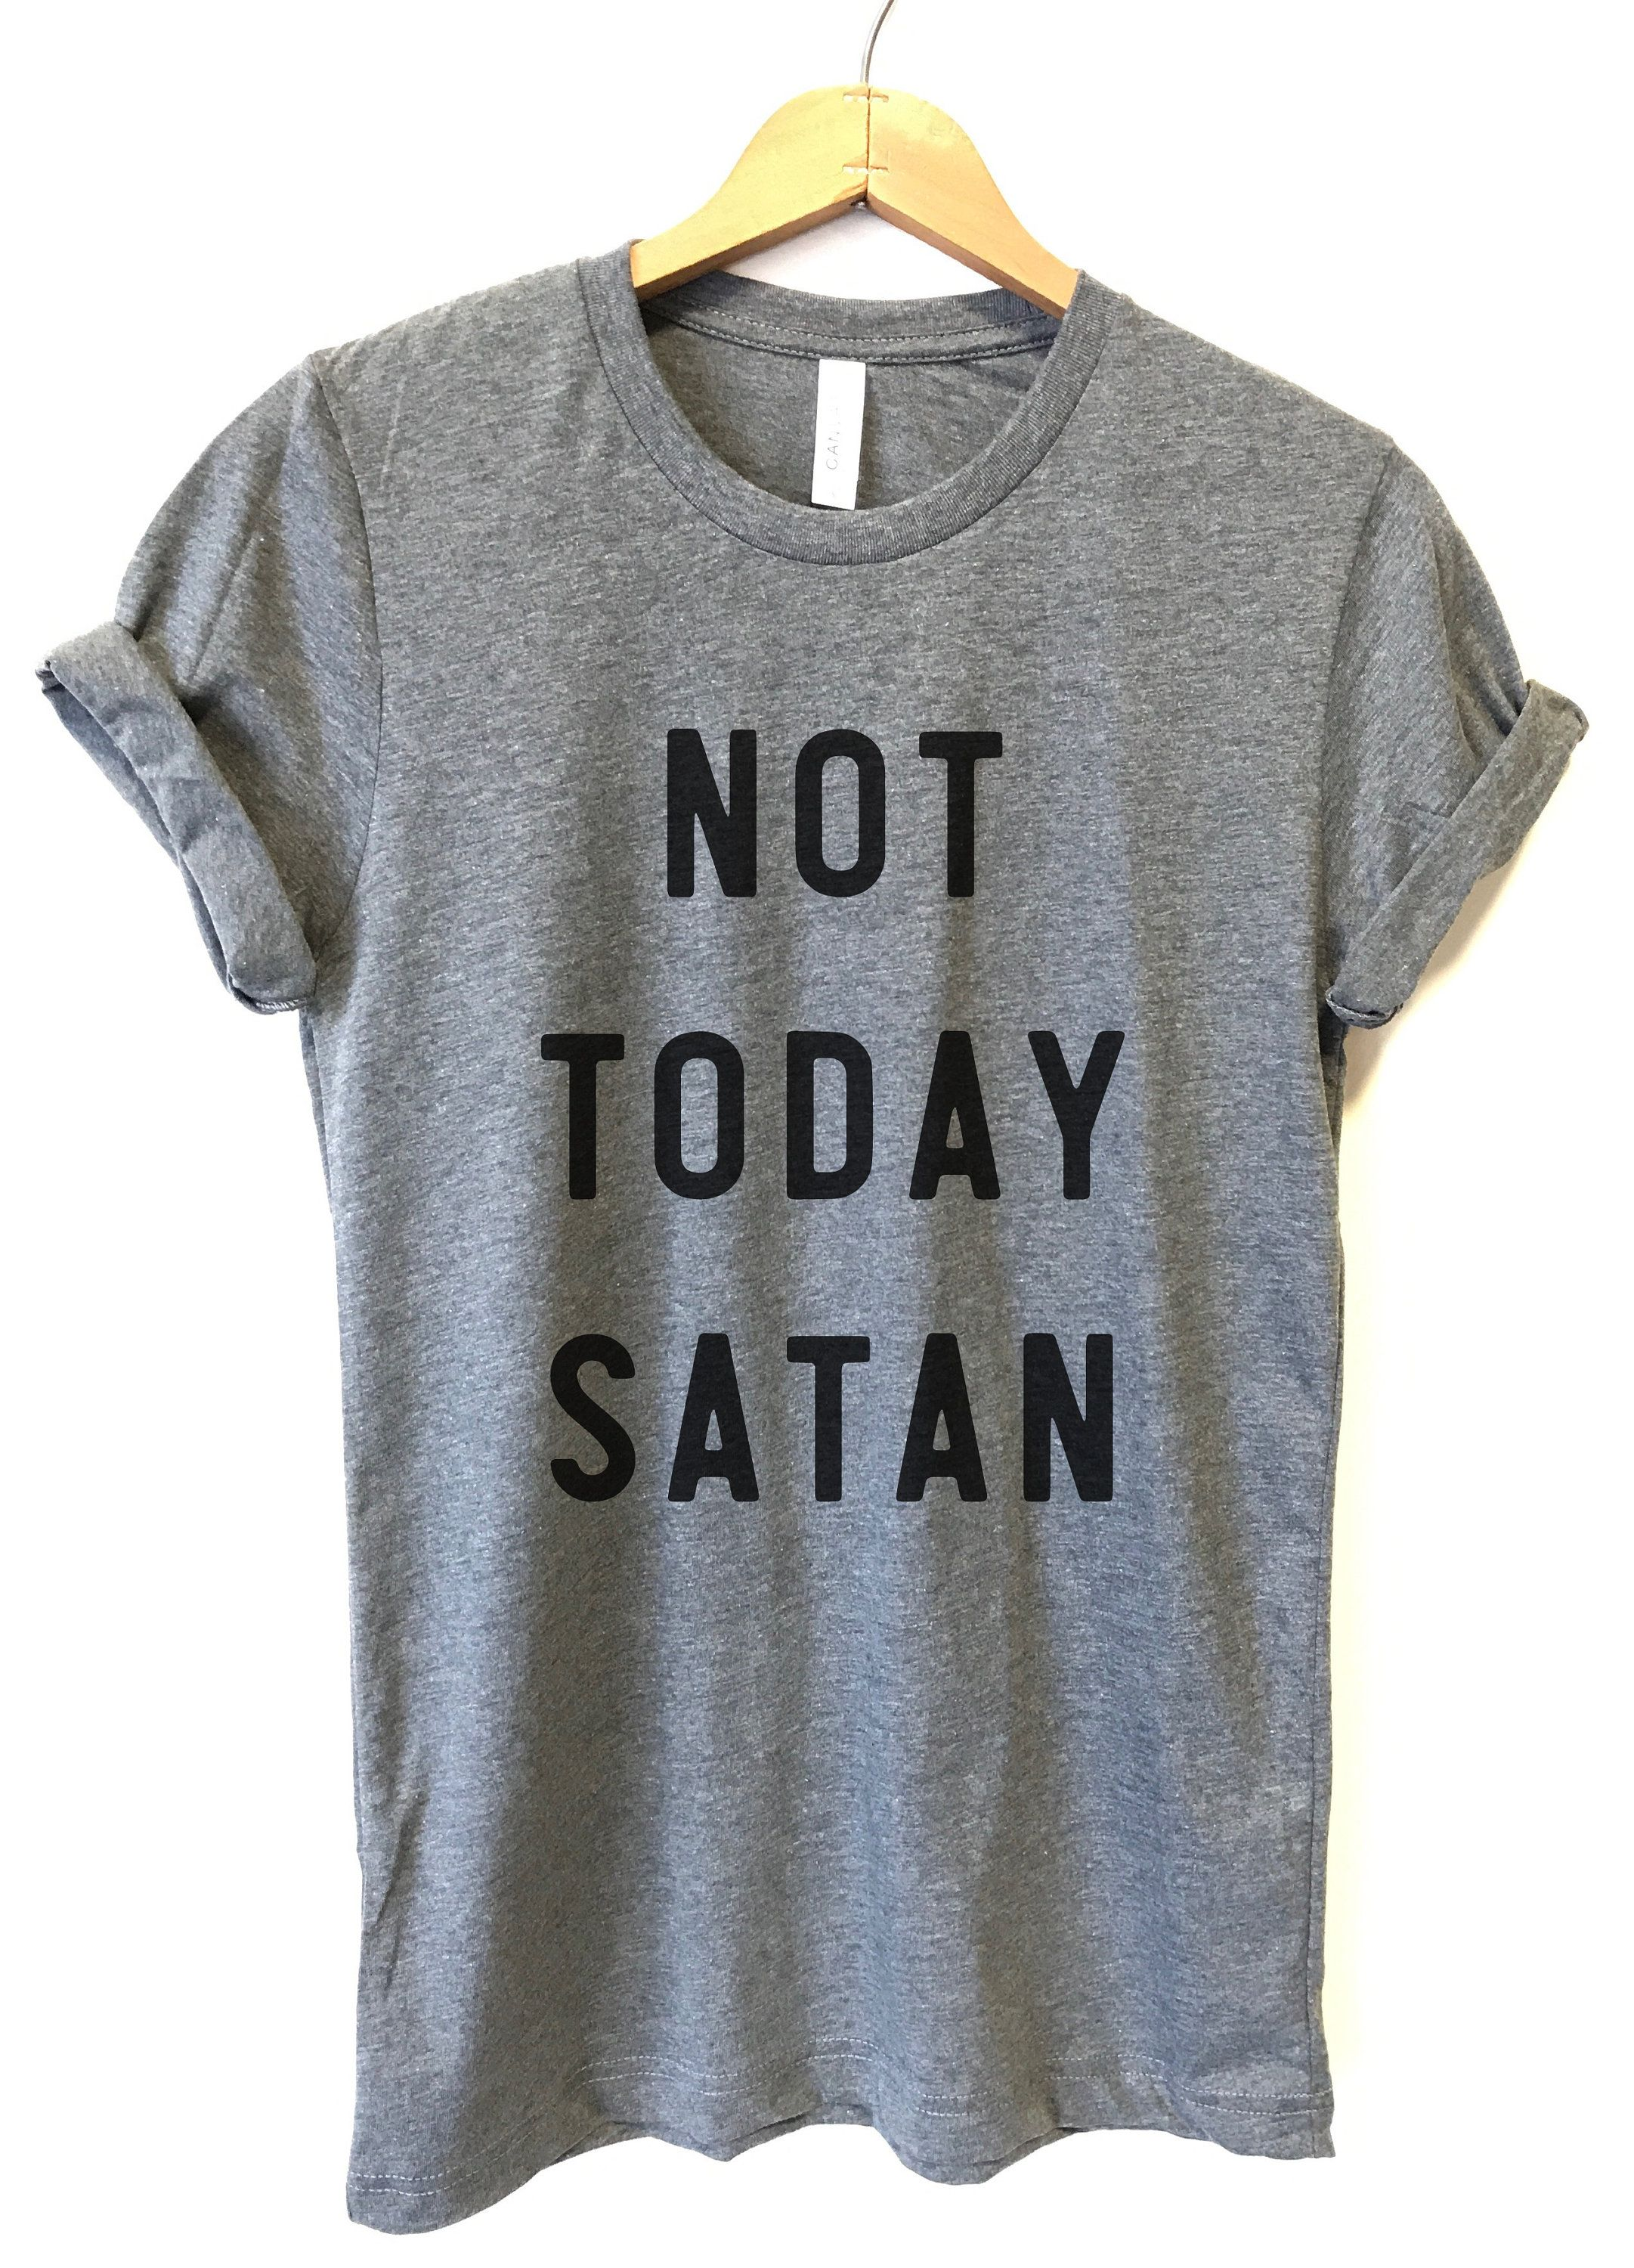 7479c4c5 Not Today Satan Shirt, TShirts for Women, Graphic Tee, Ladies Unisex shirt,  Christian T Shirt, Jesus Saves Bro, All I need is Jesus by PeachMarketplace  on ...